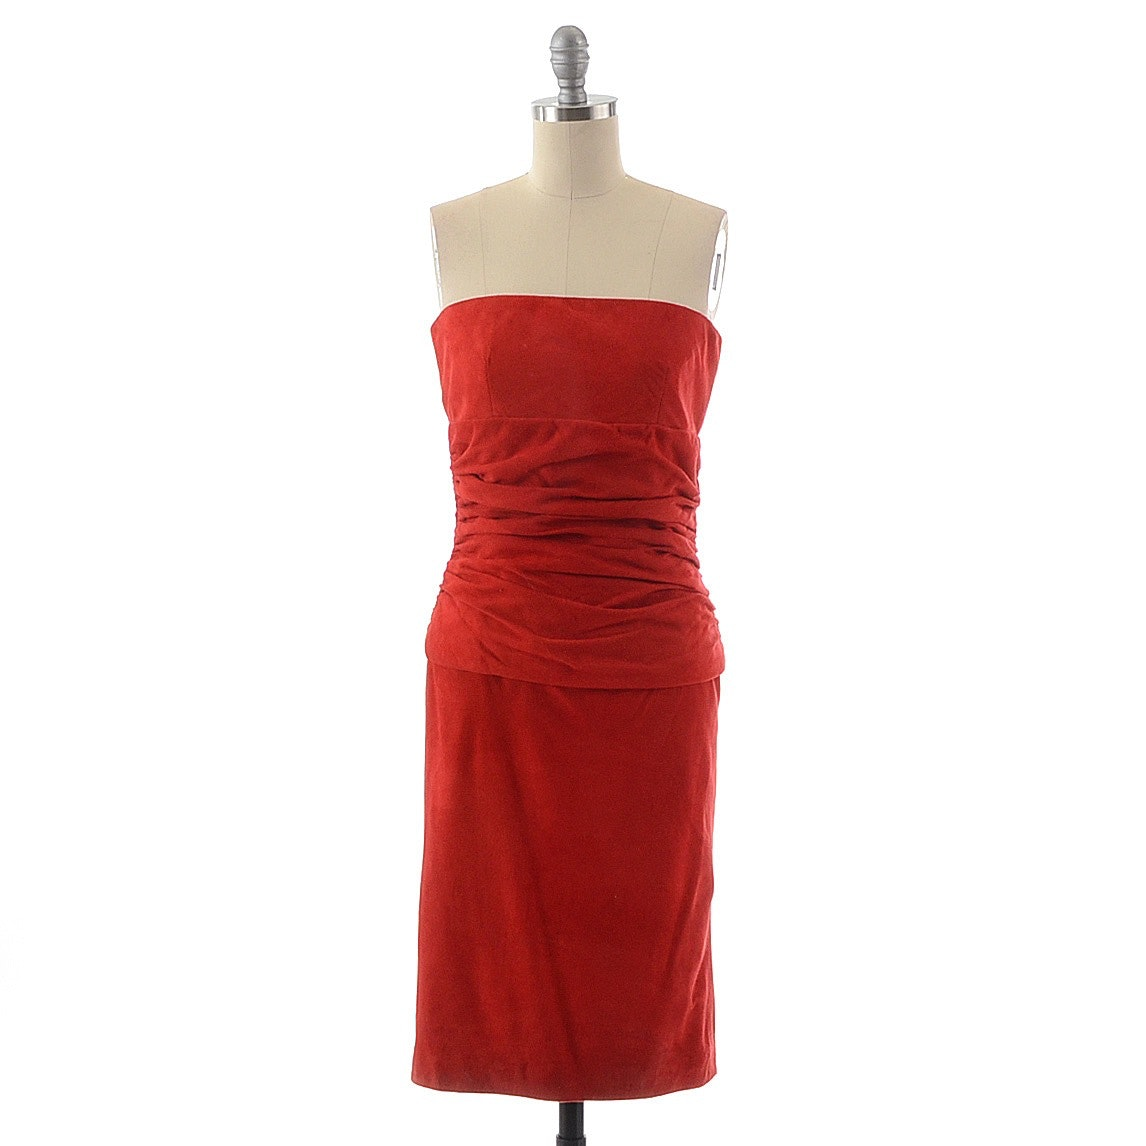 Privato of New York Red Suede Ruched Strapless Cocktail Dress